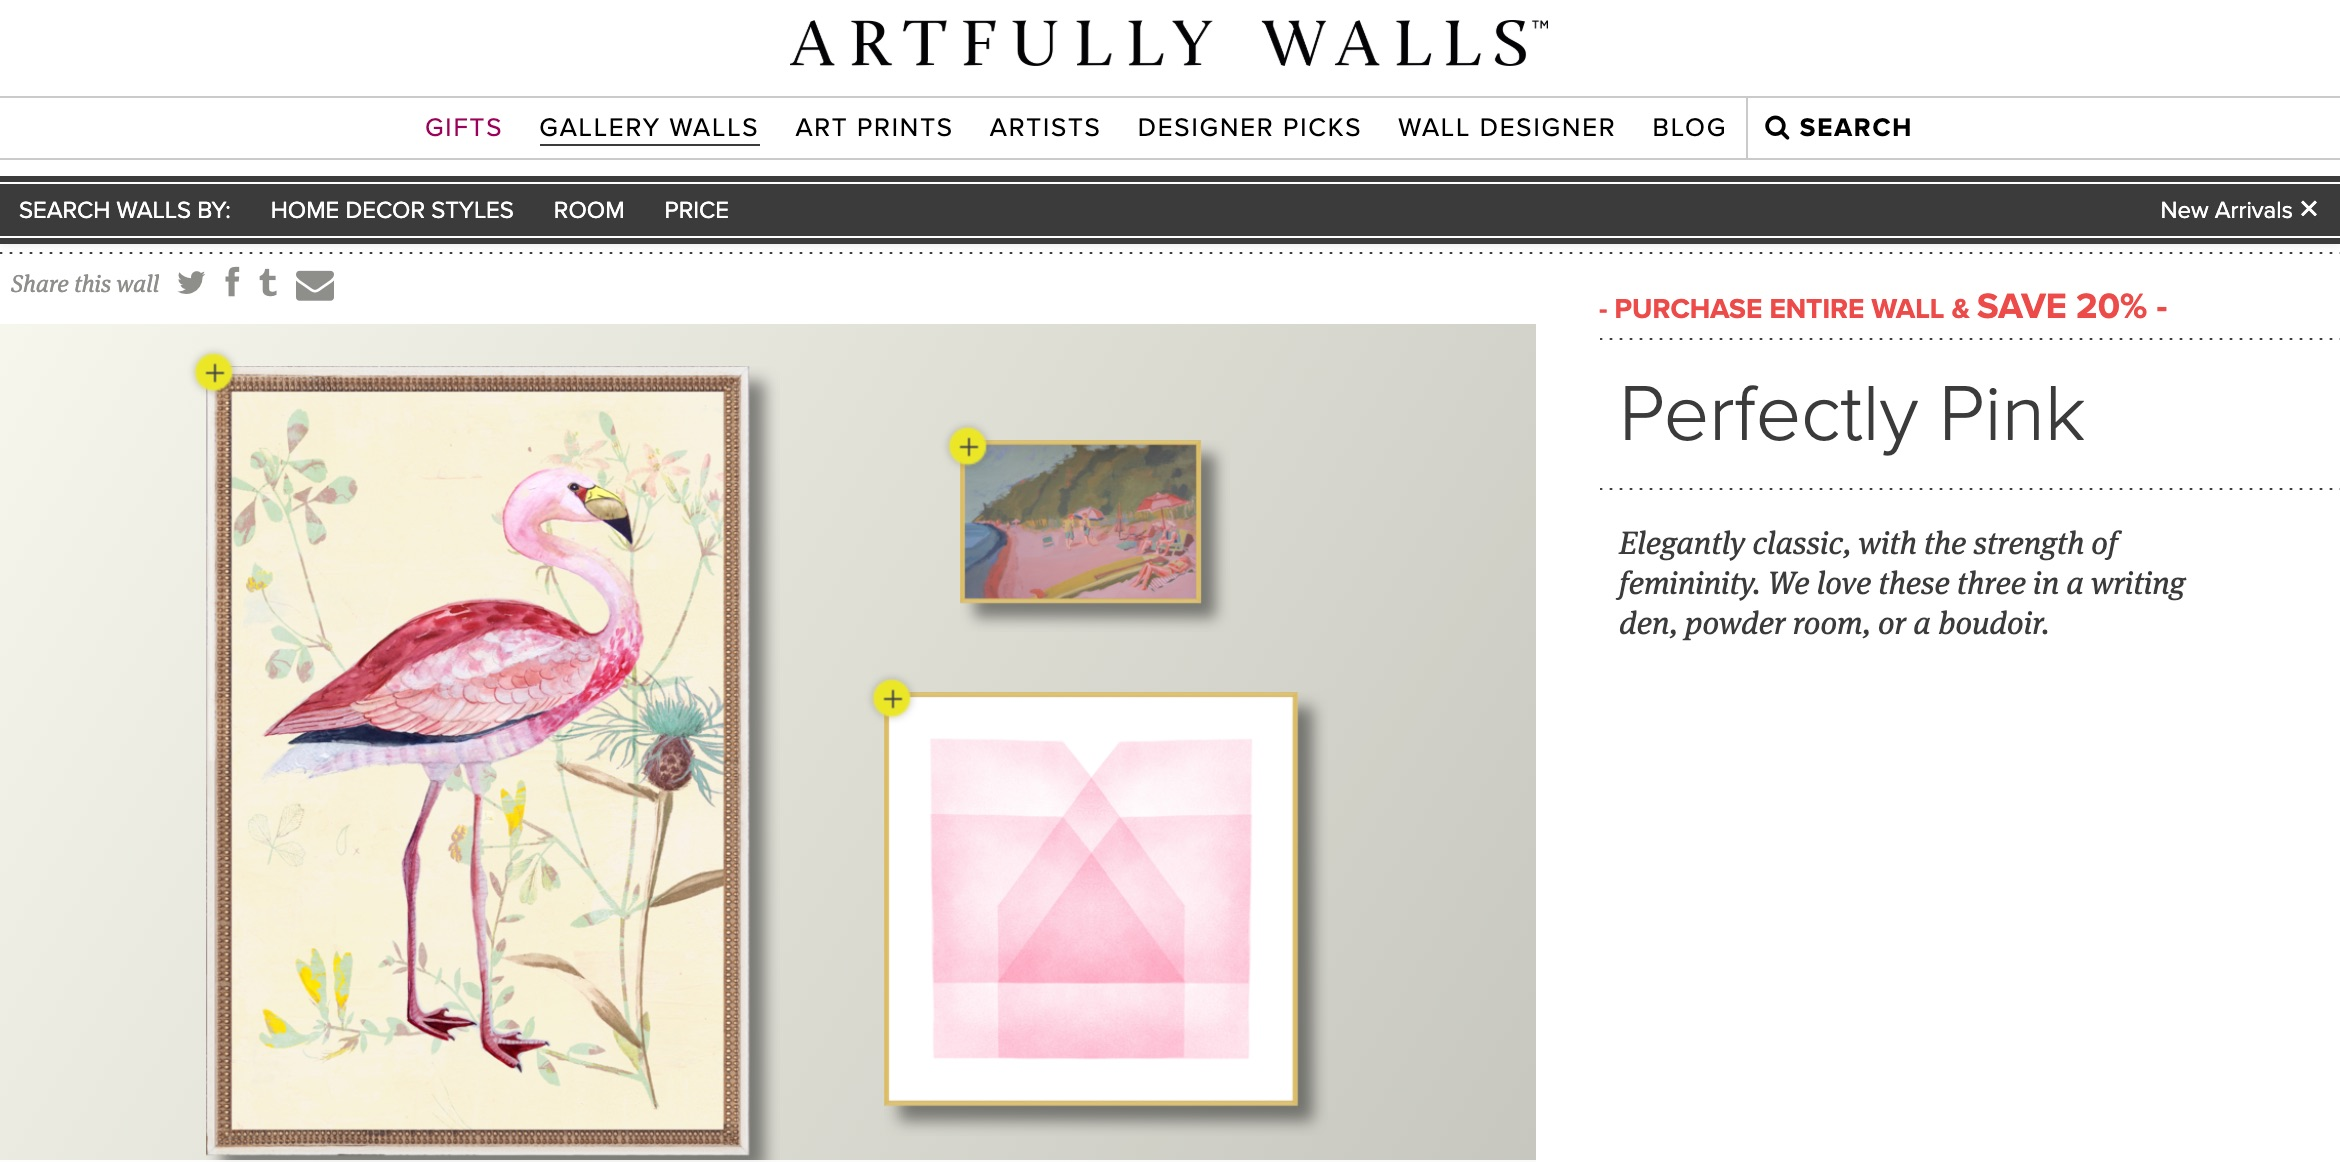 artfully-walls-jessica-poundstone-feature-perfectly-pink.jpg